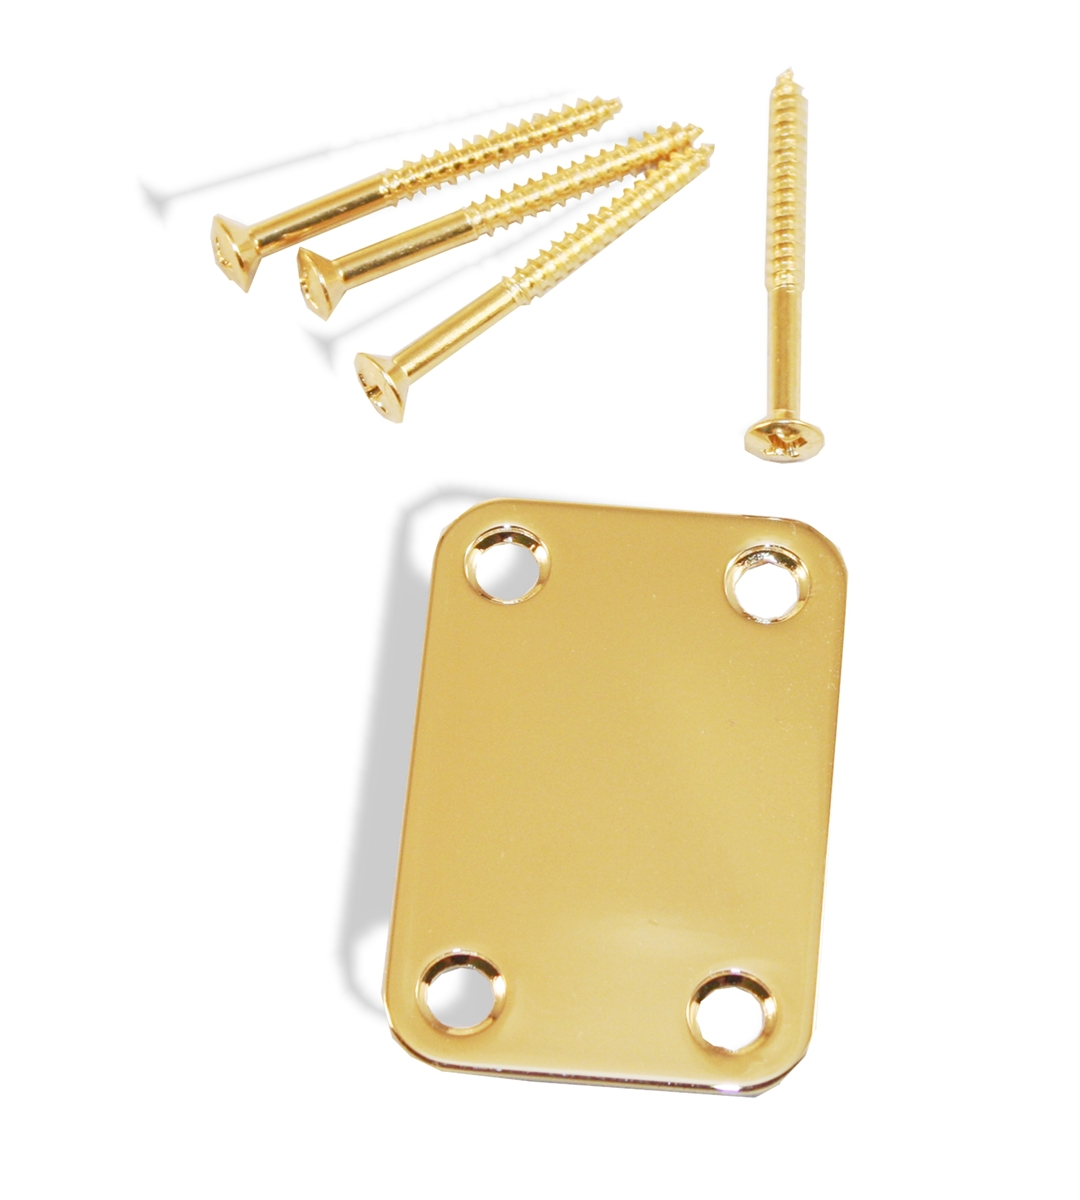 Bass set of 4 Gold Neck Plate Mounting Screws for Guitar